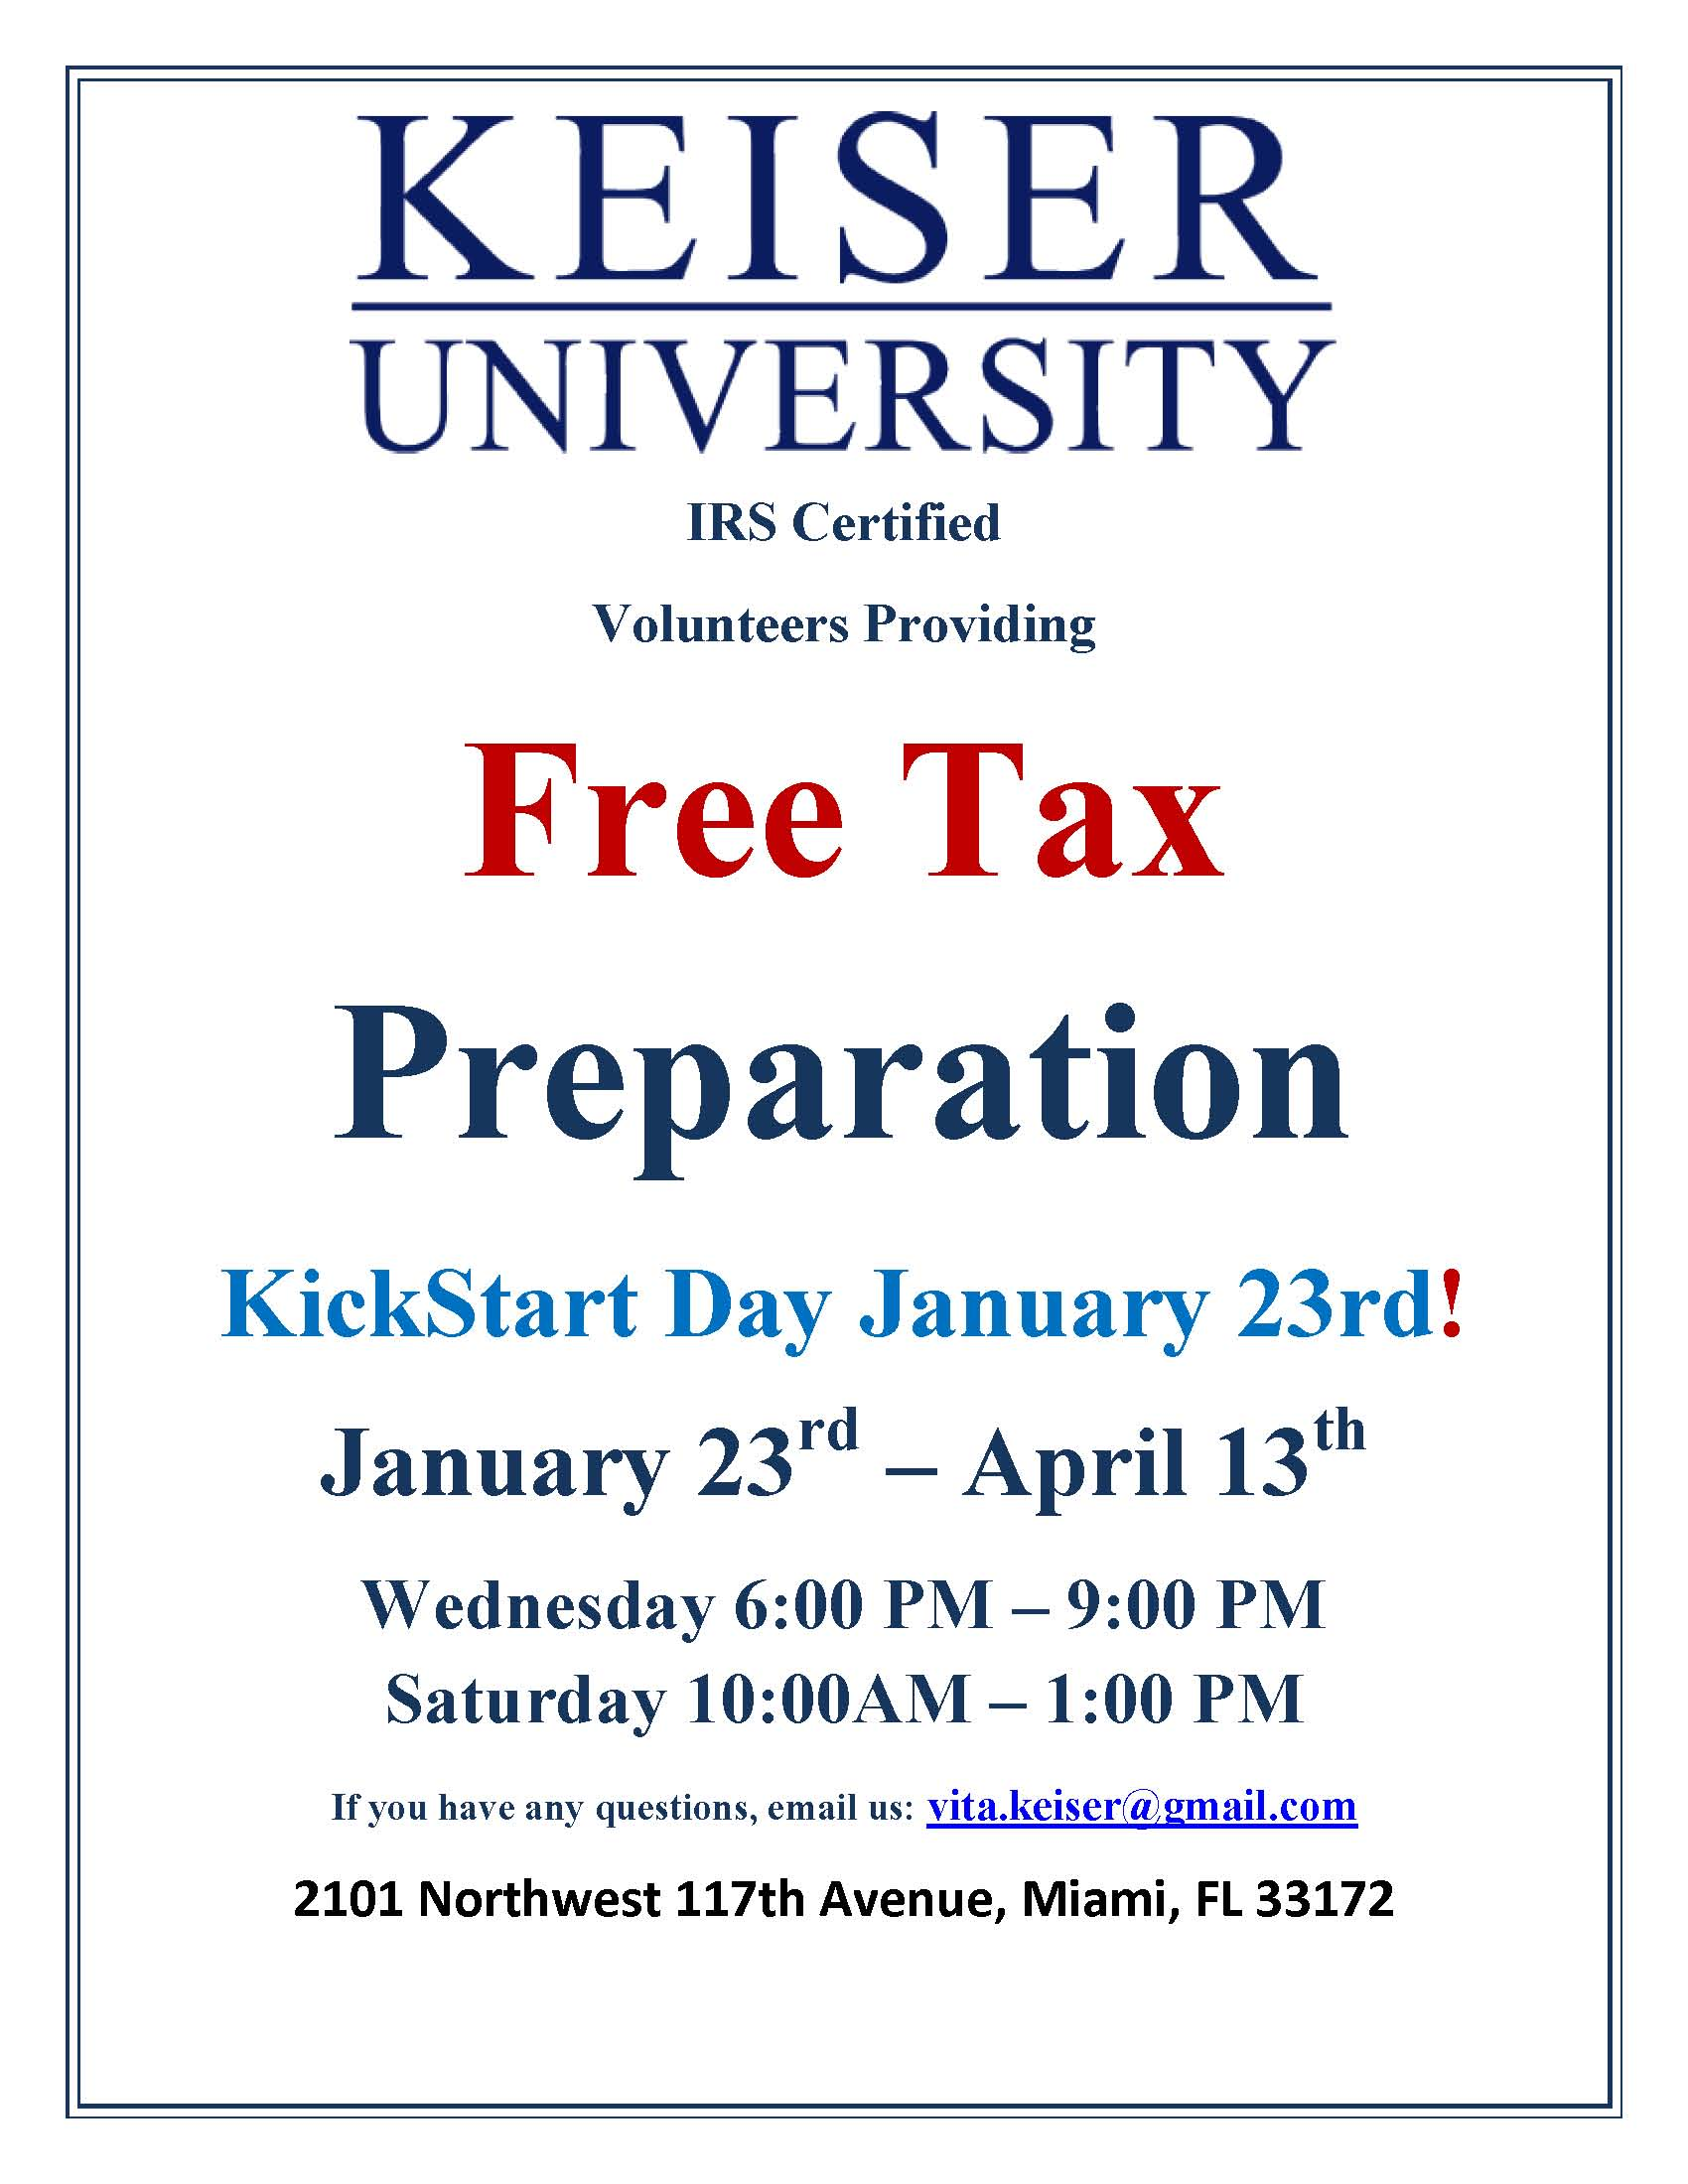 Free Tax Preparation at the Miami Campus